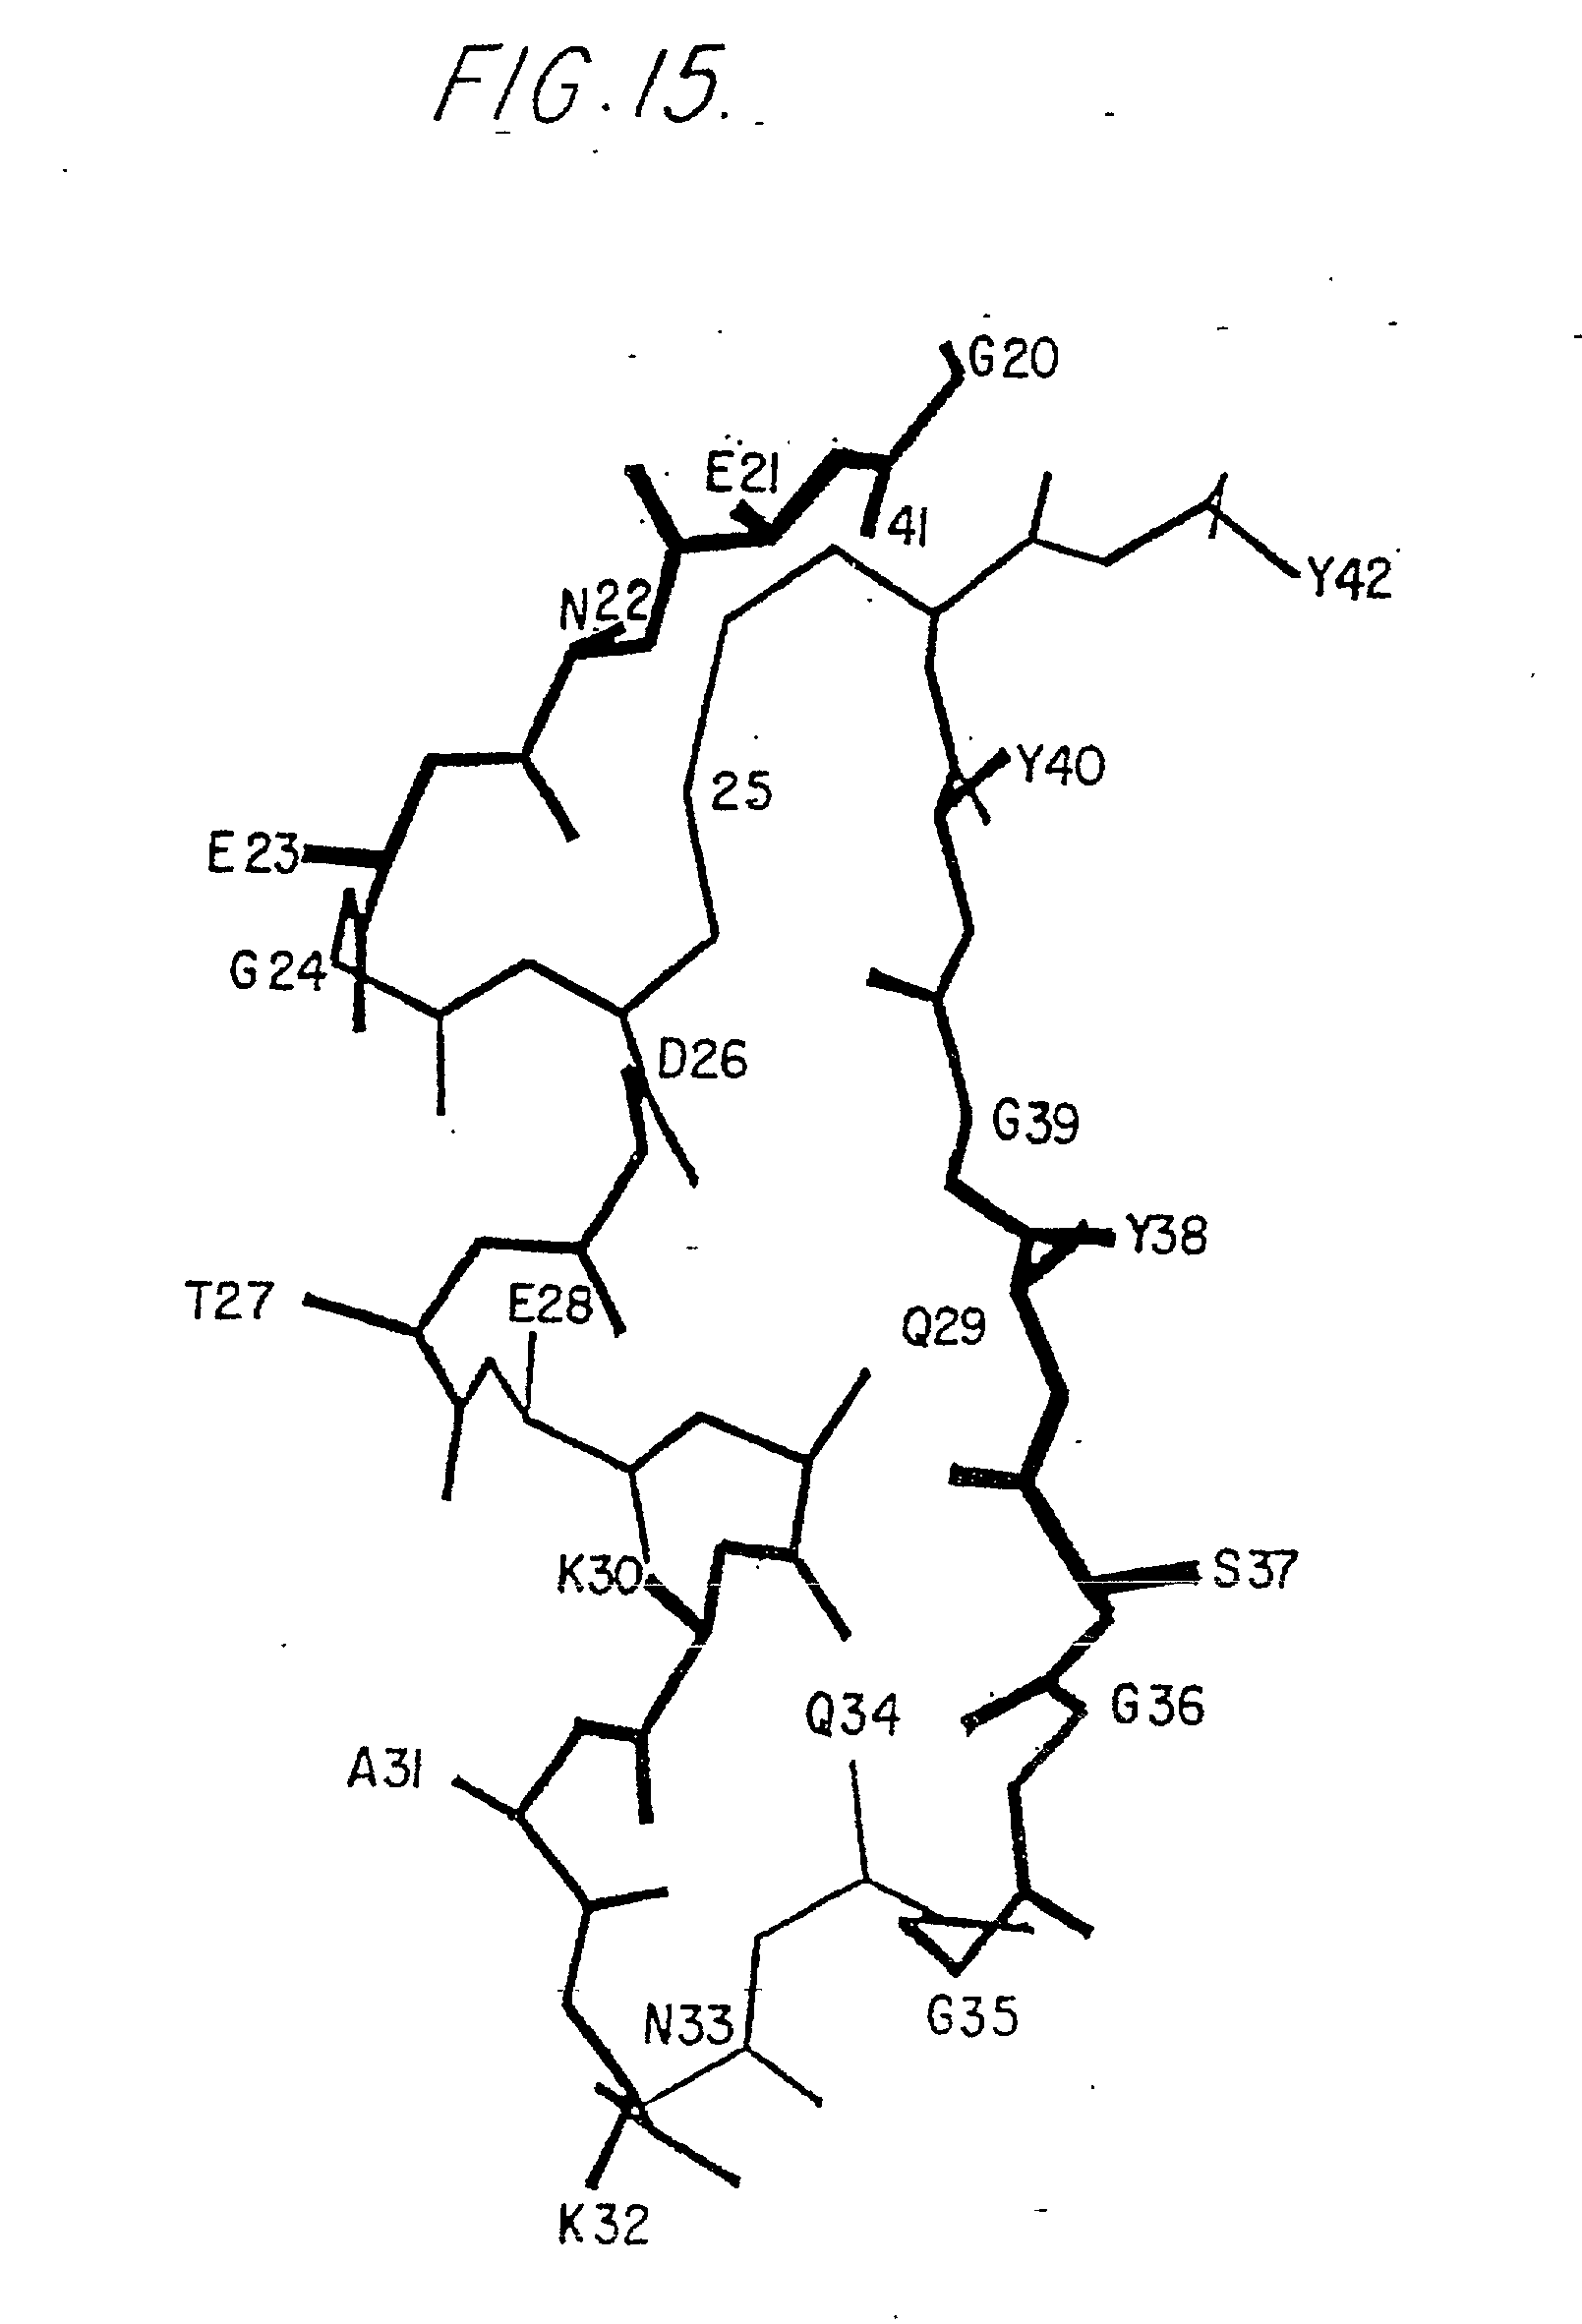 Us20040005539a1 nucleic acids ge ic constructs and library of nucleic acids encoding fusion proteins patents